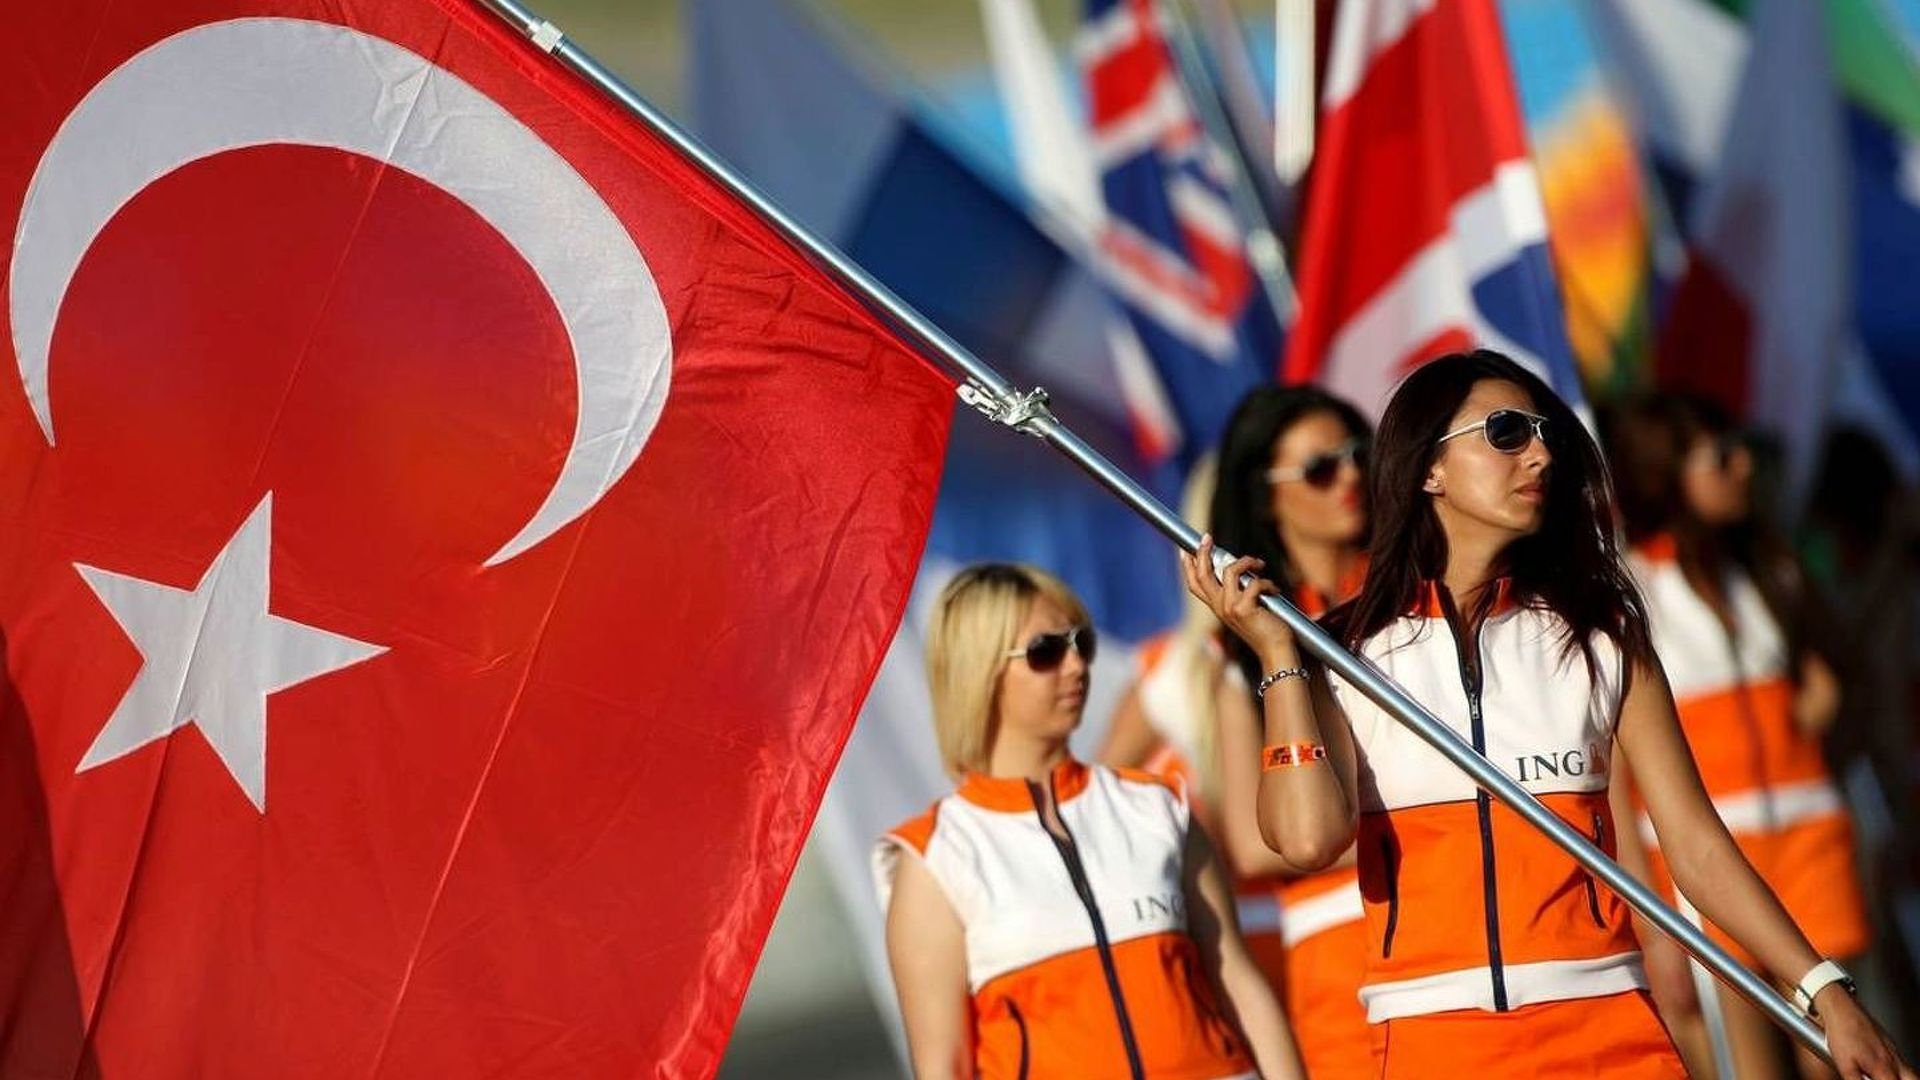 Rumour - Turkey to be dropped from 2010 calendar